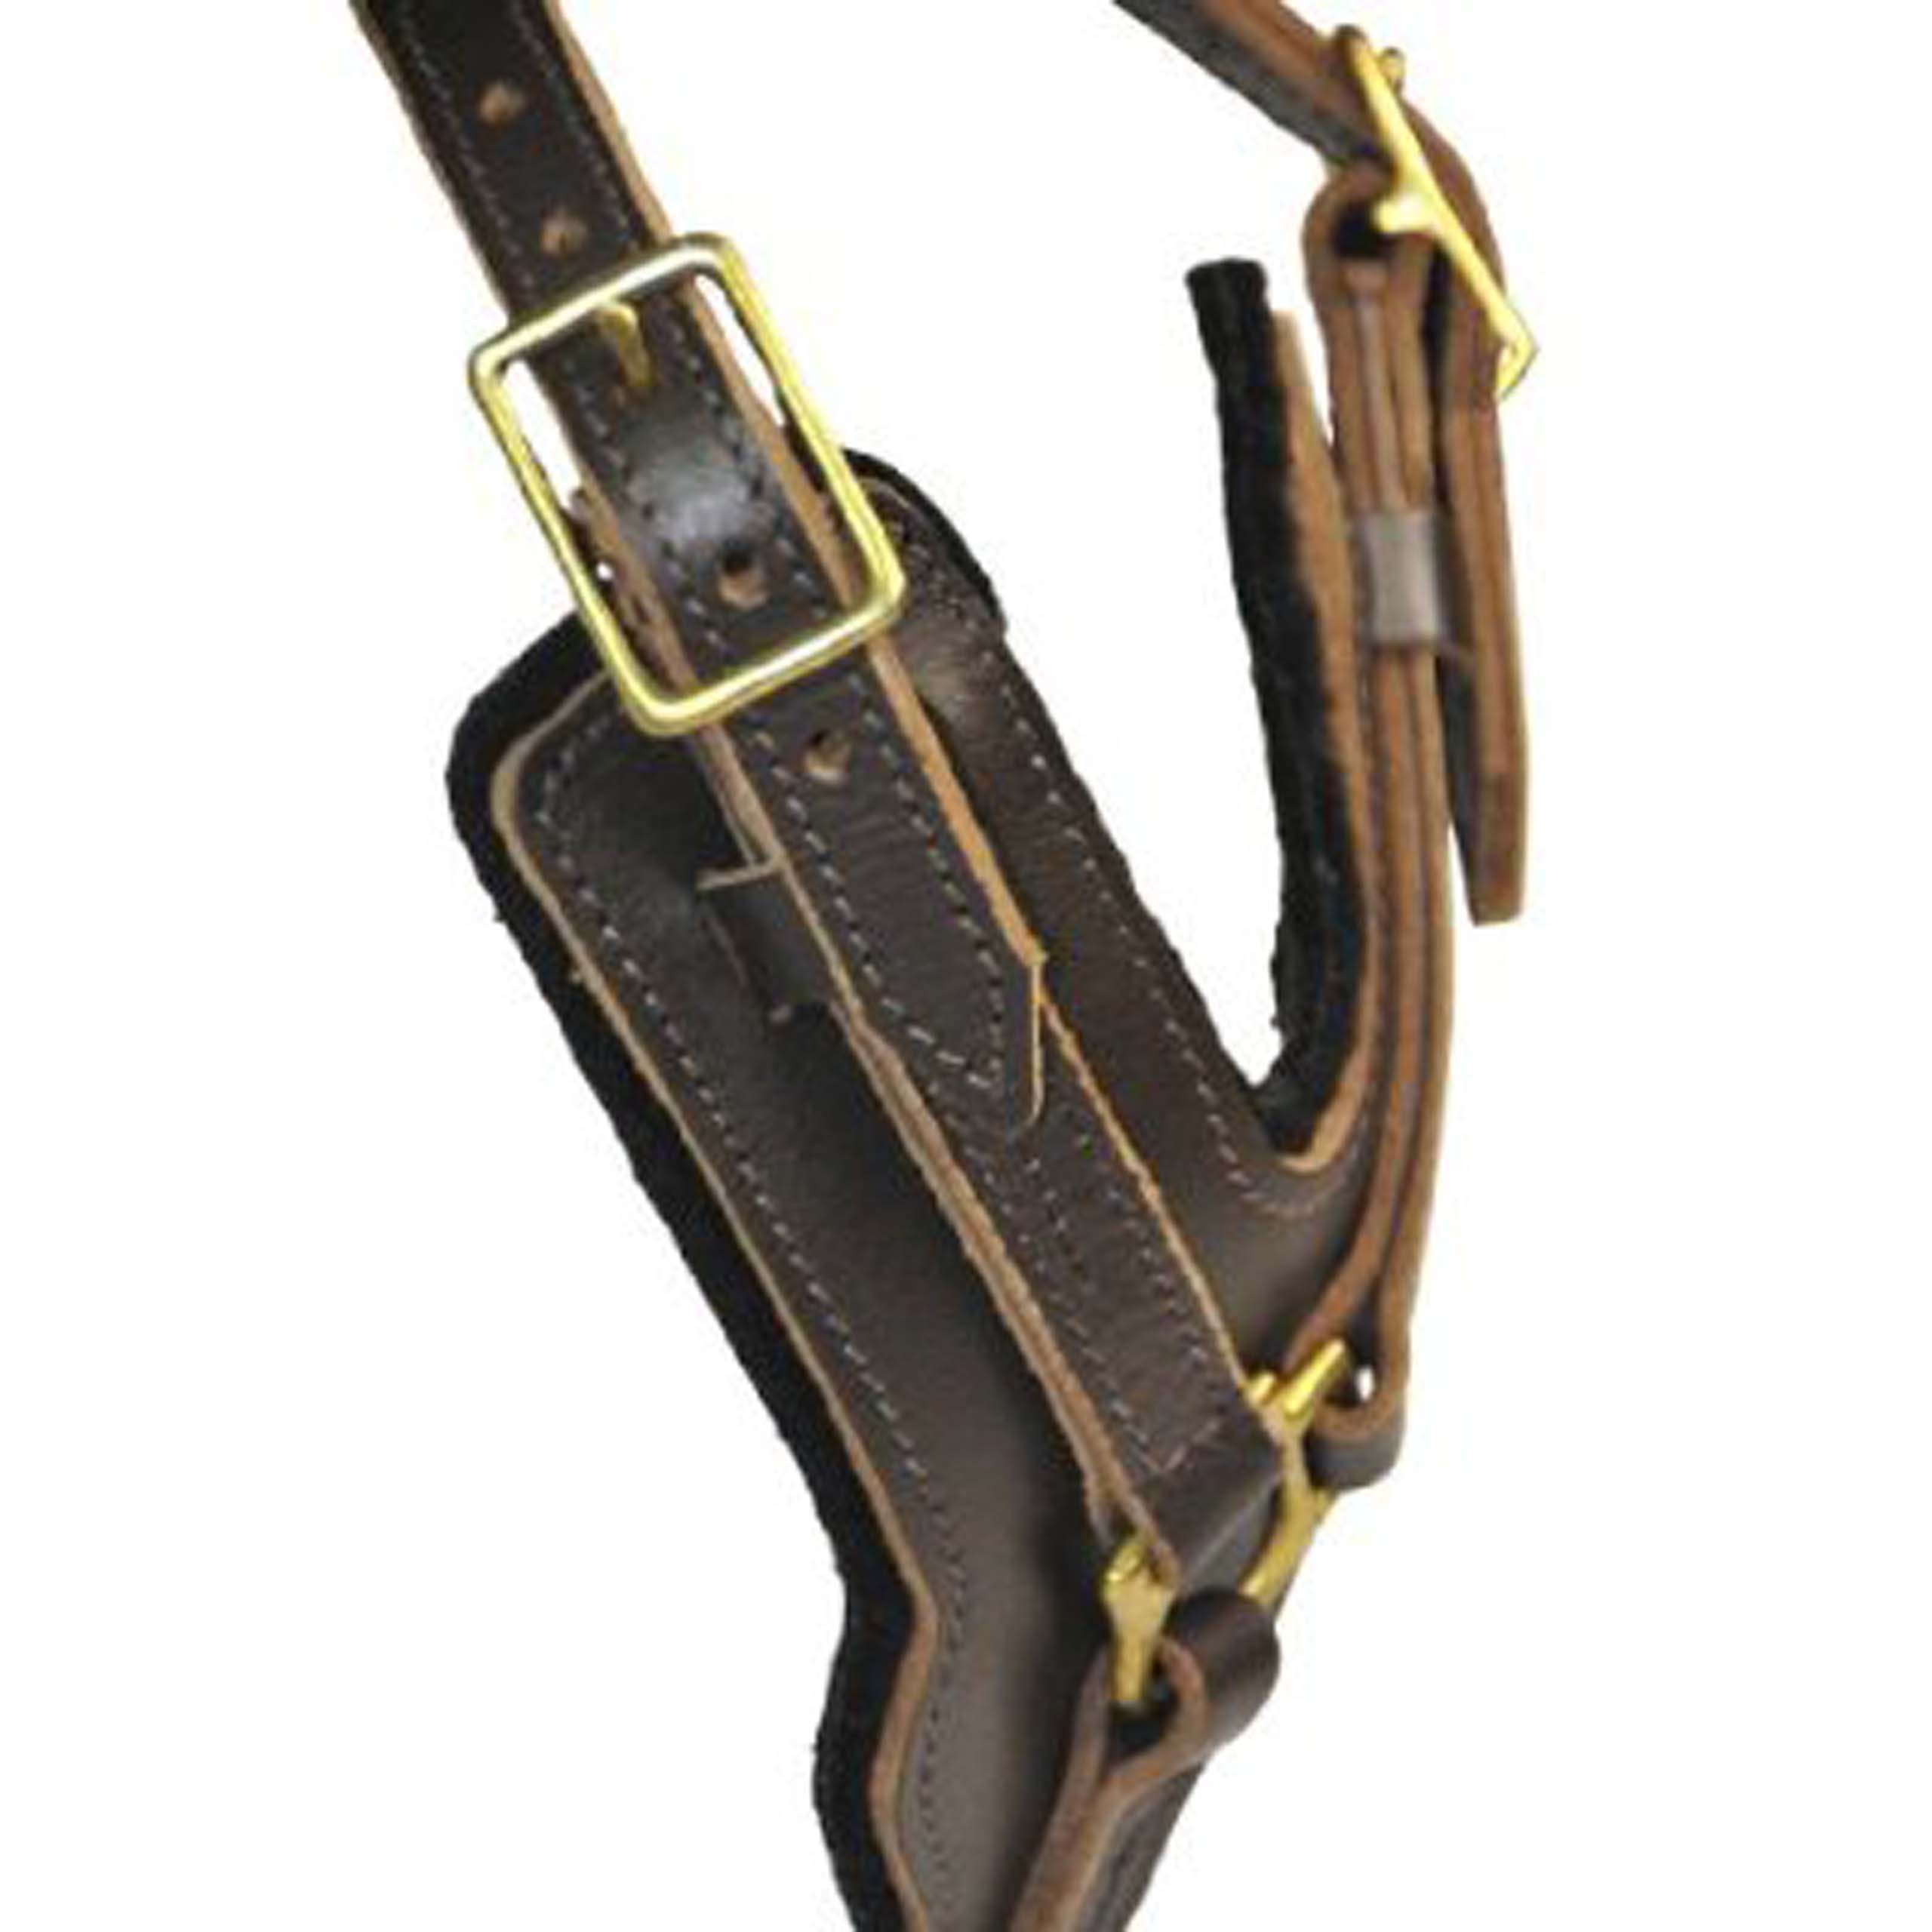 Dean and Tyler The Victory Solid Brass Hardware Dog Harness, Brown, Large - Fits Girth Size: 31-Inch to 41-Inch by Dean & Tyler (Image #3)